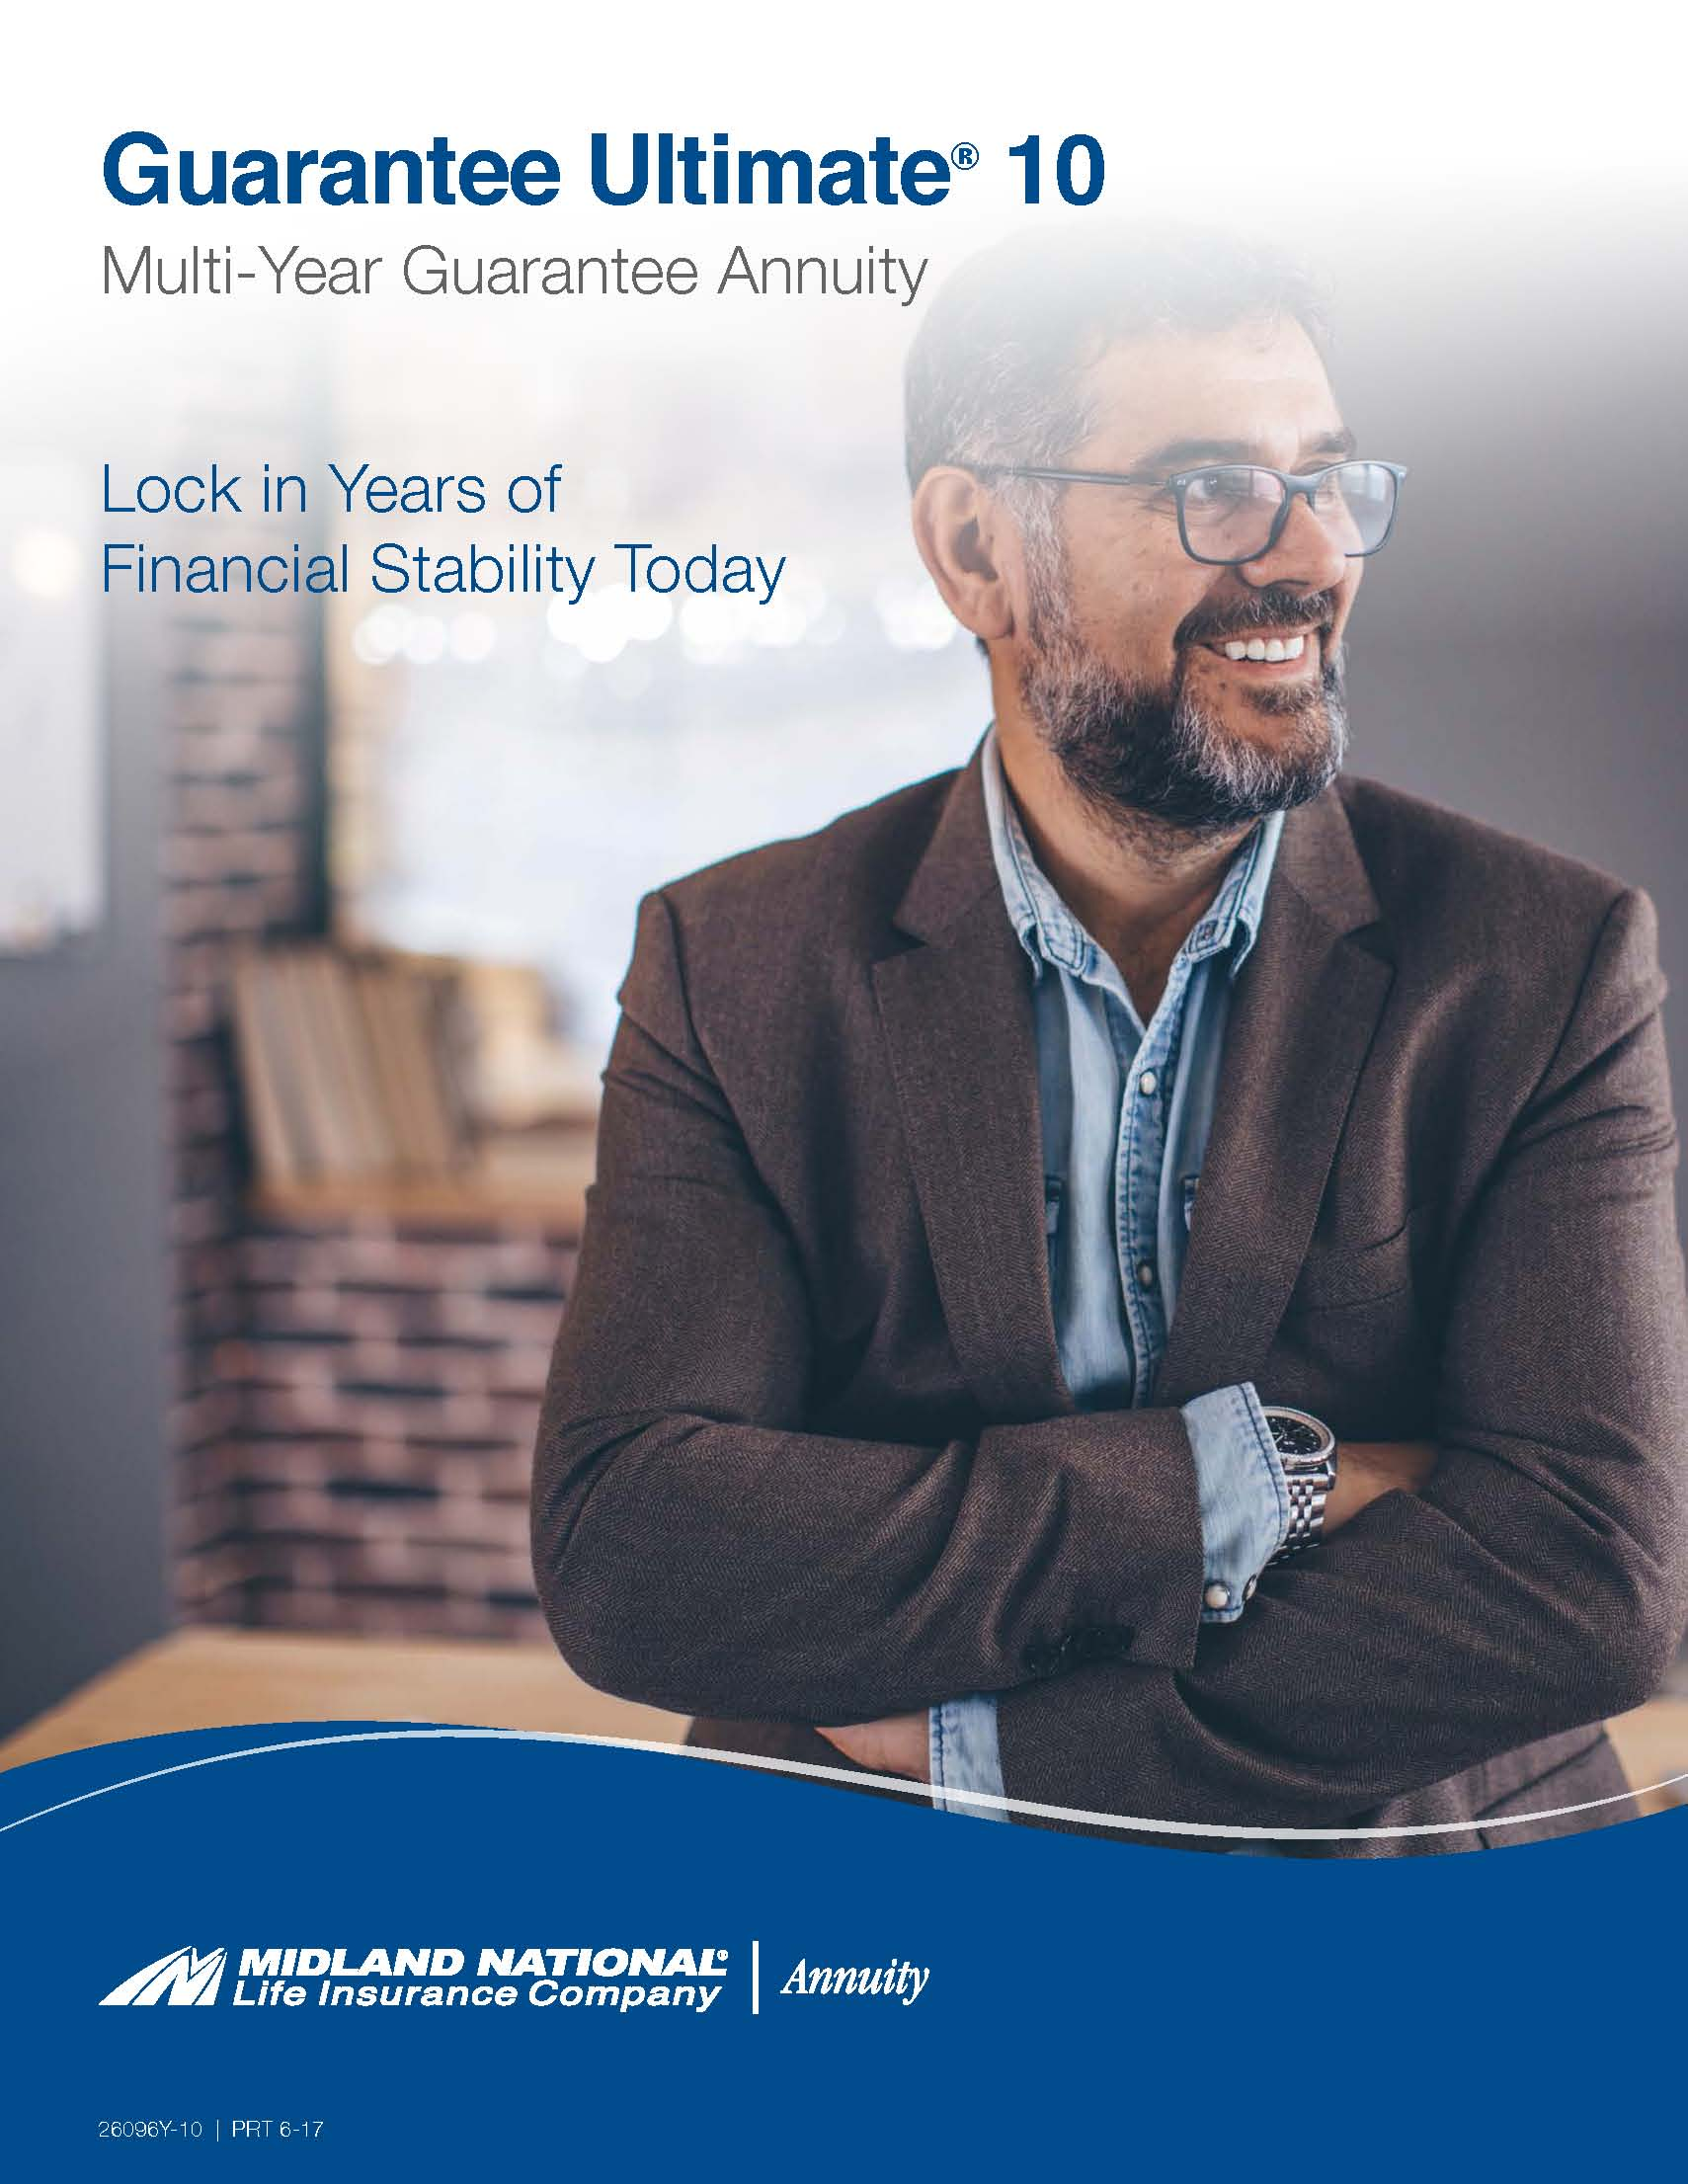 midland national guarantee ultimate 10 annuity brochure